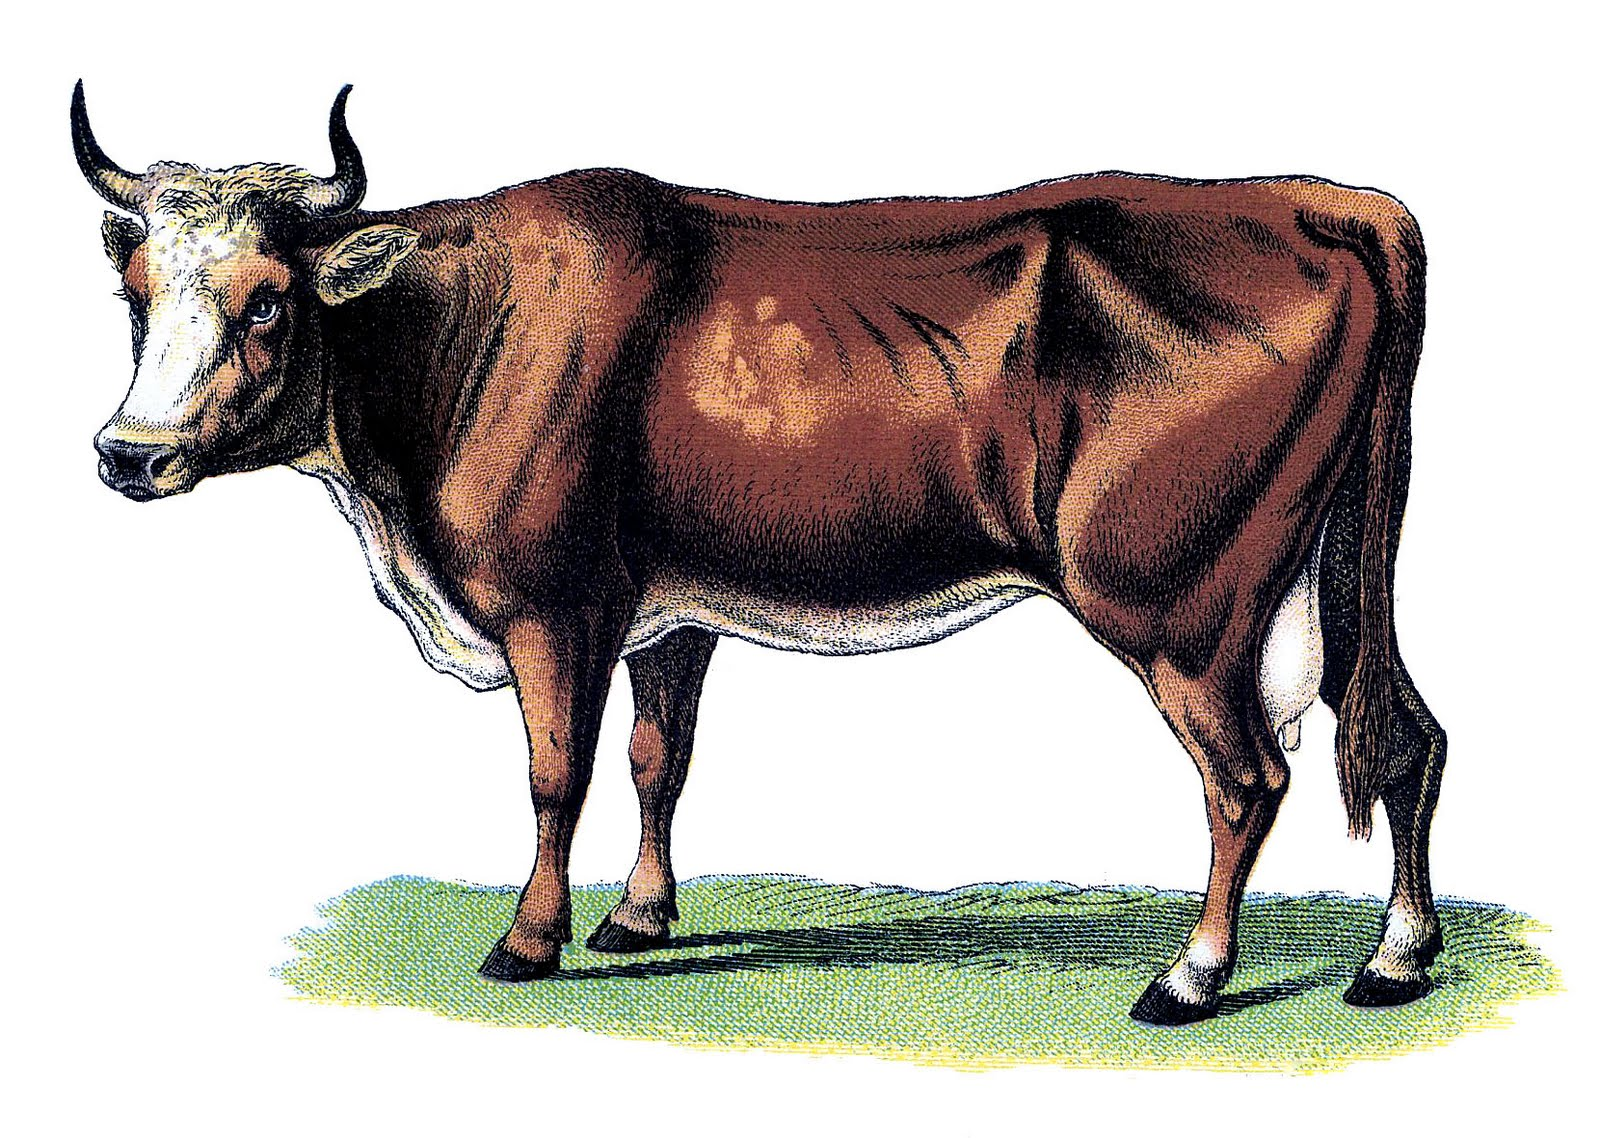 Cow clip art vintage. Graphic image beautiful the